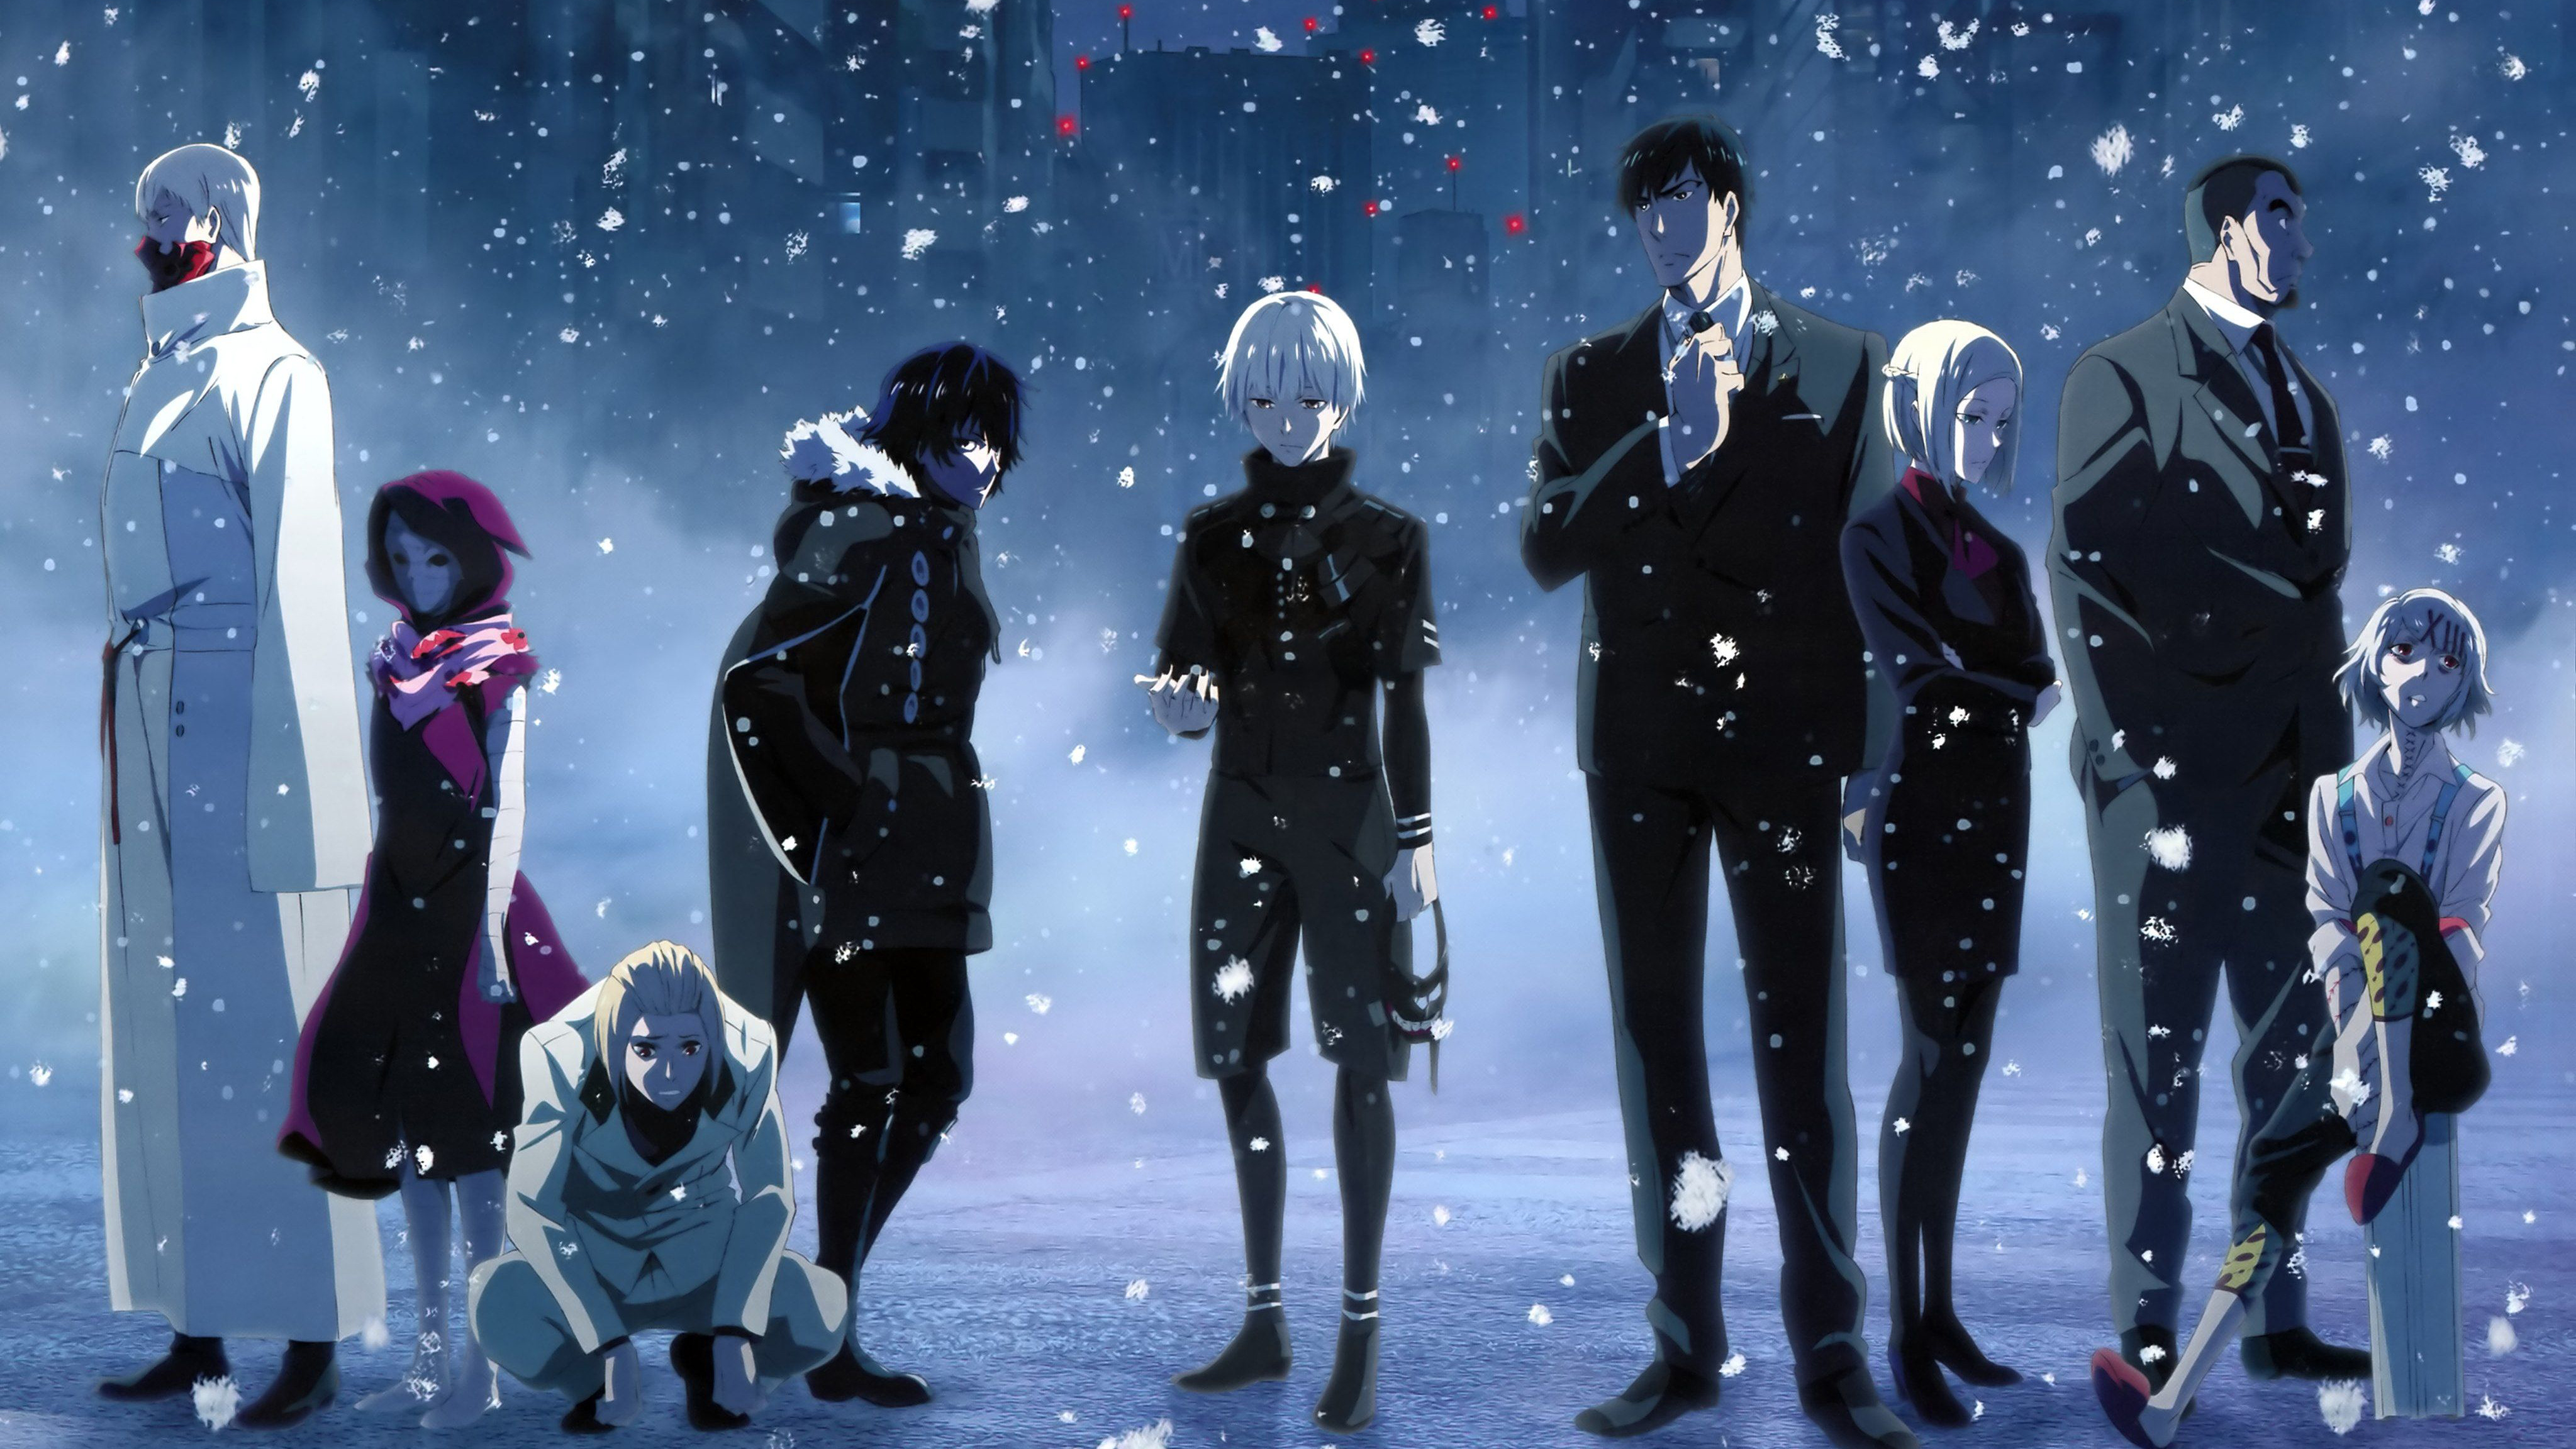 Tokyo Ghoul Re Koutarou Amon 4k Hd Anime 4k Wallpapers Images Backgrounds Photos And Pictures